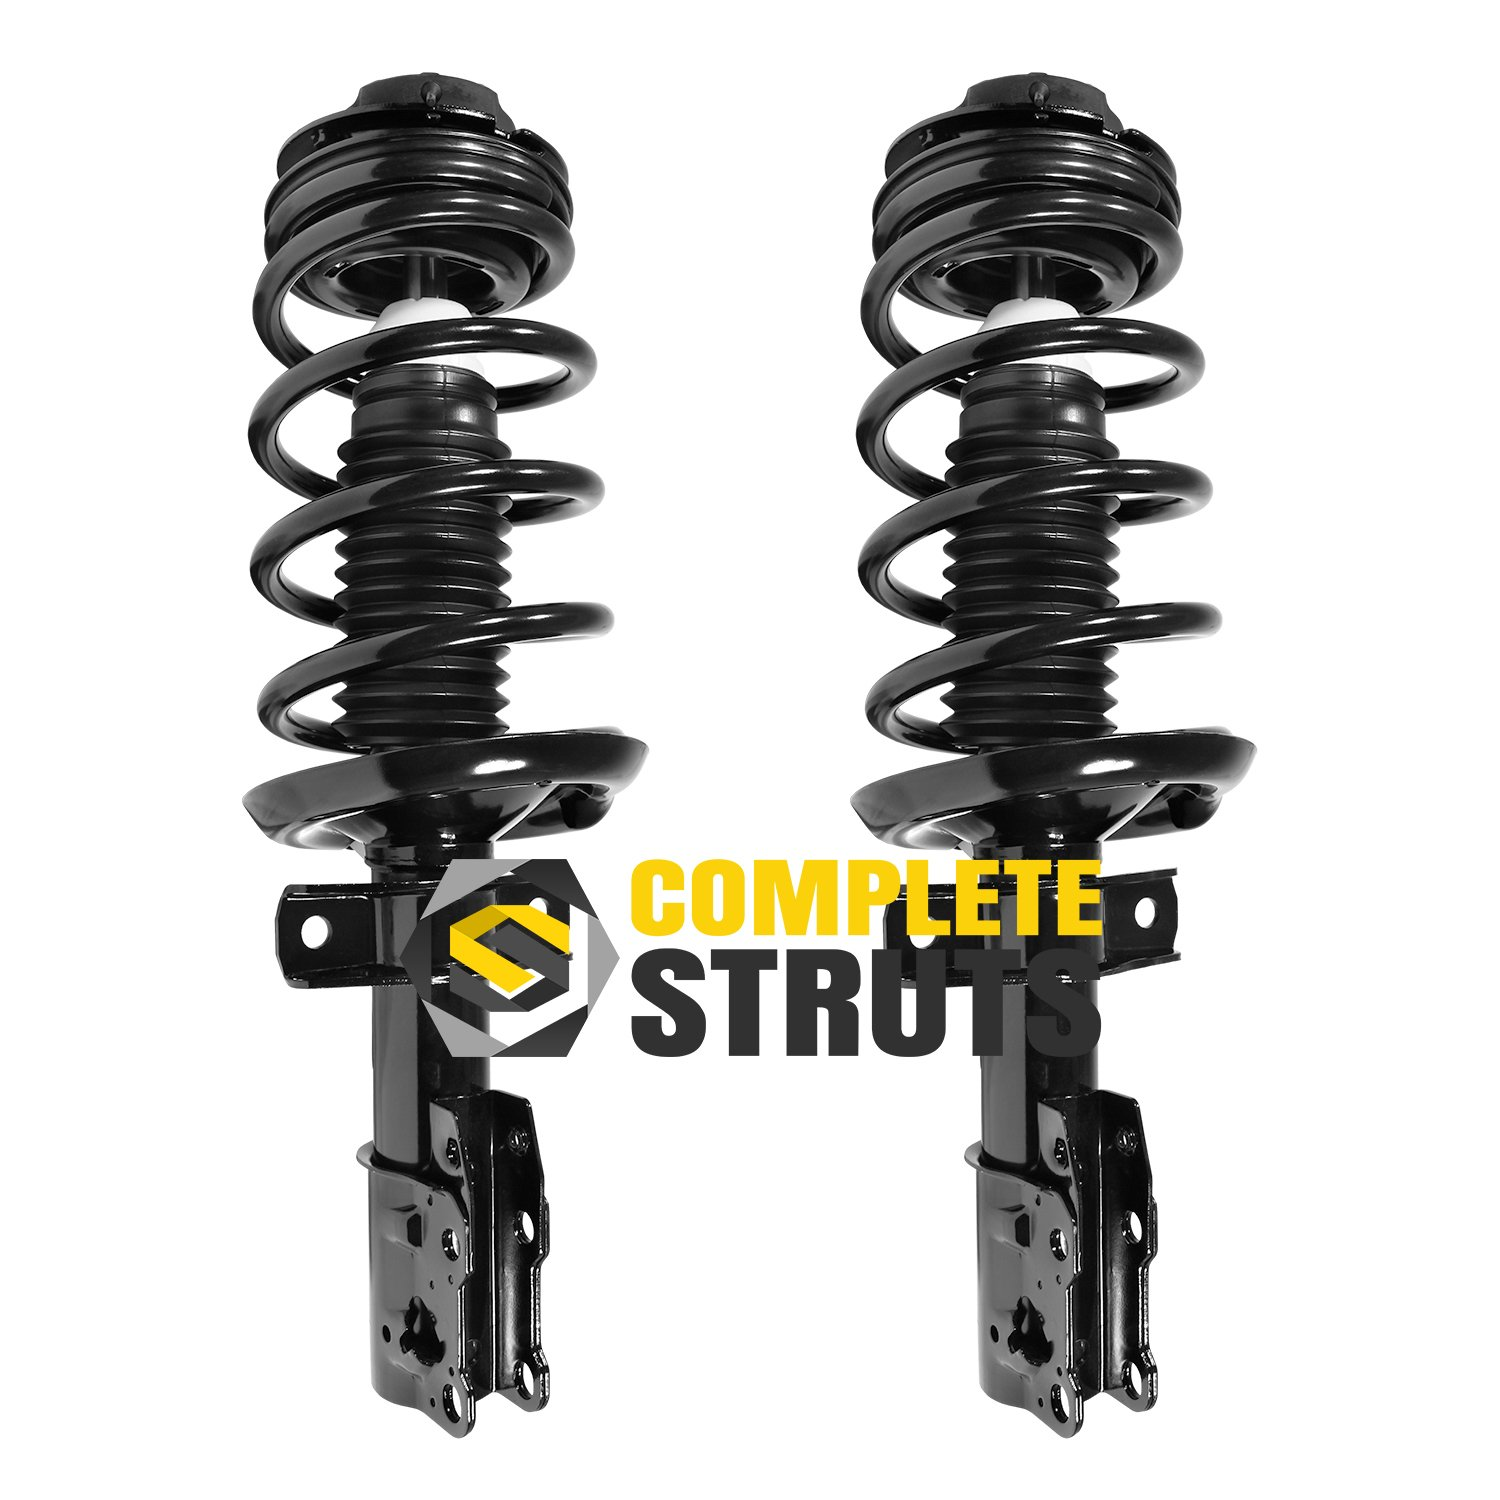 Autosaver88 Pair new Rear Left Right Complete Struts Shocks Absorber Driver Passenger Side for 2006 2007 2008 2009 2010 2012 2013 2014 2015 Mazda 5 2004 2005 2006 2007 2008 2009 Mazda 3 343412 5607 70